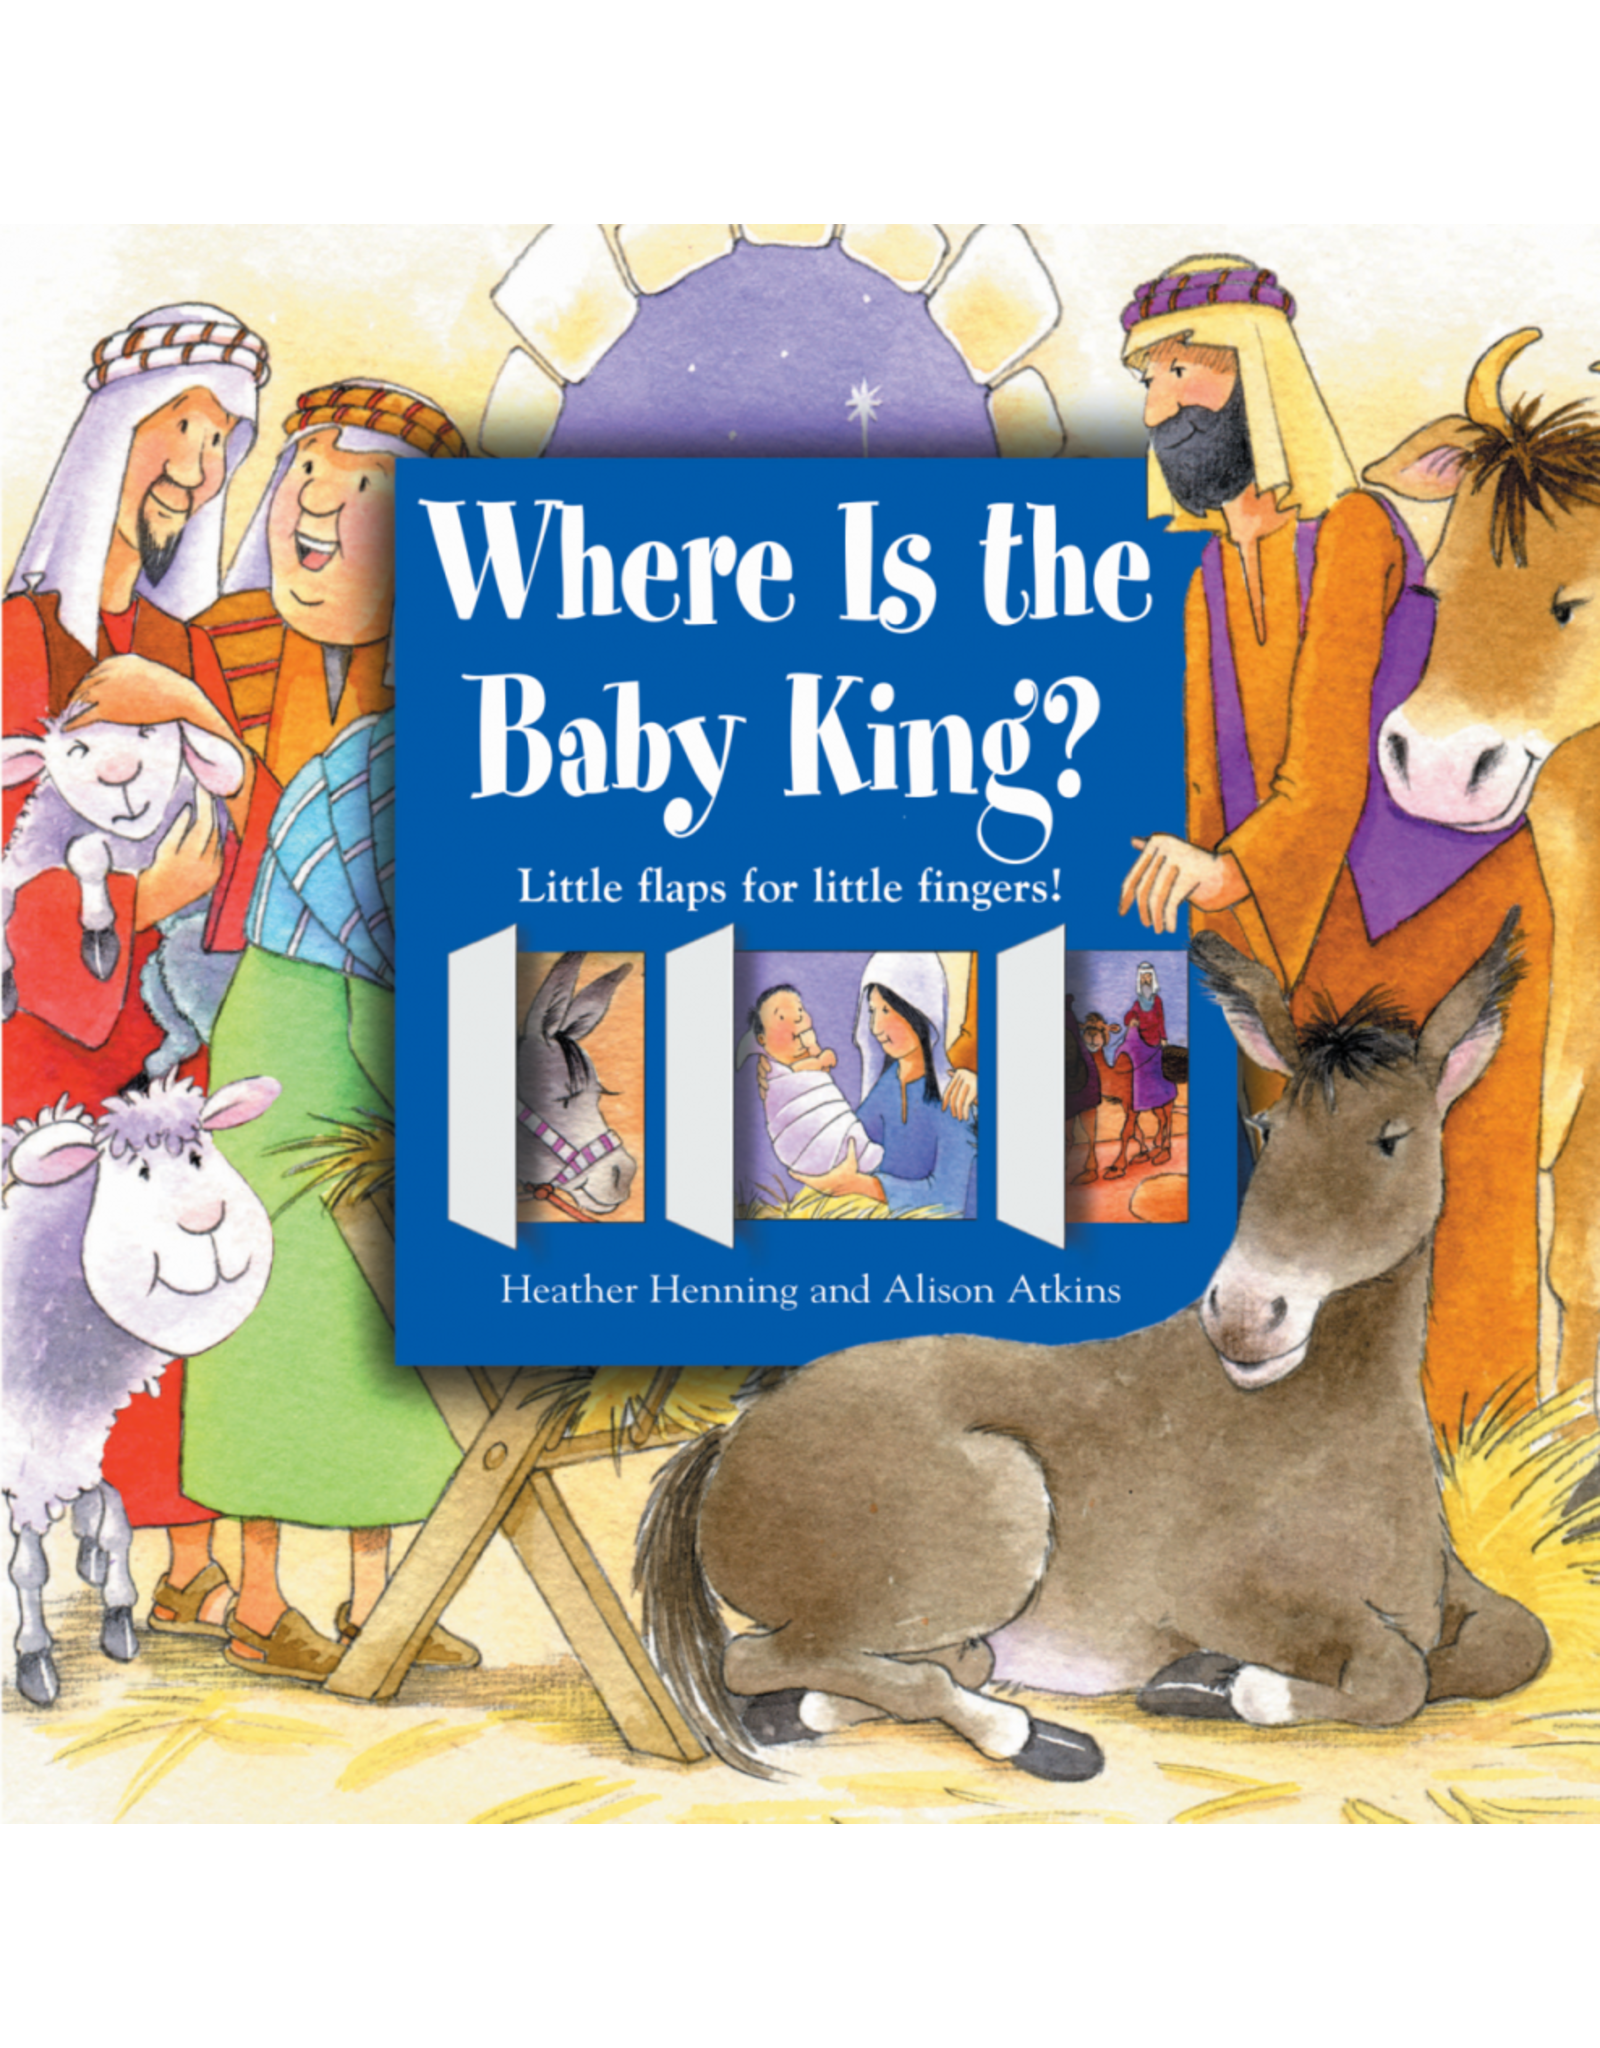 Where Is the Baby King?